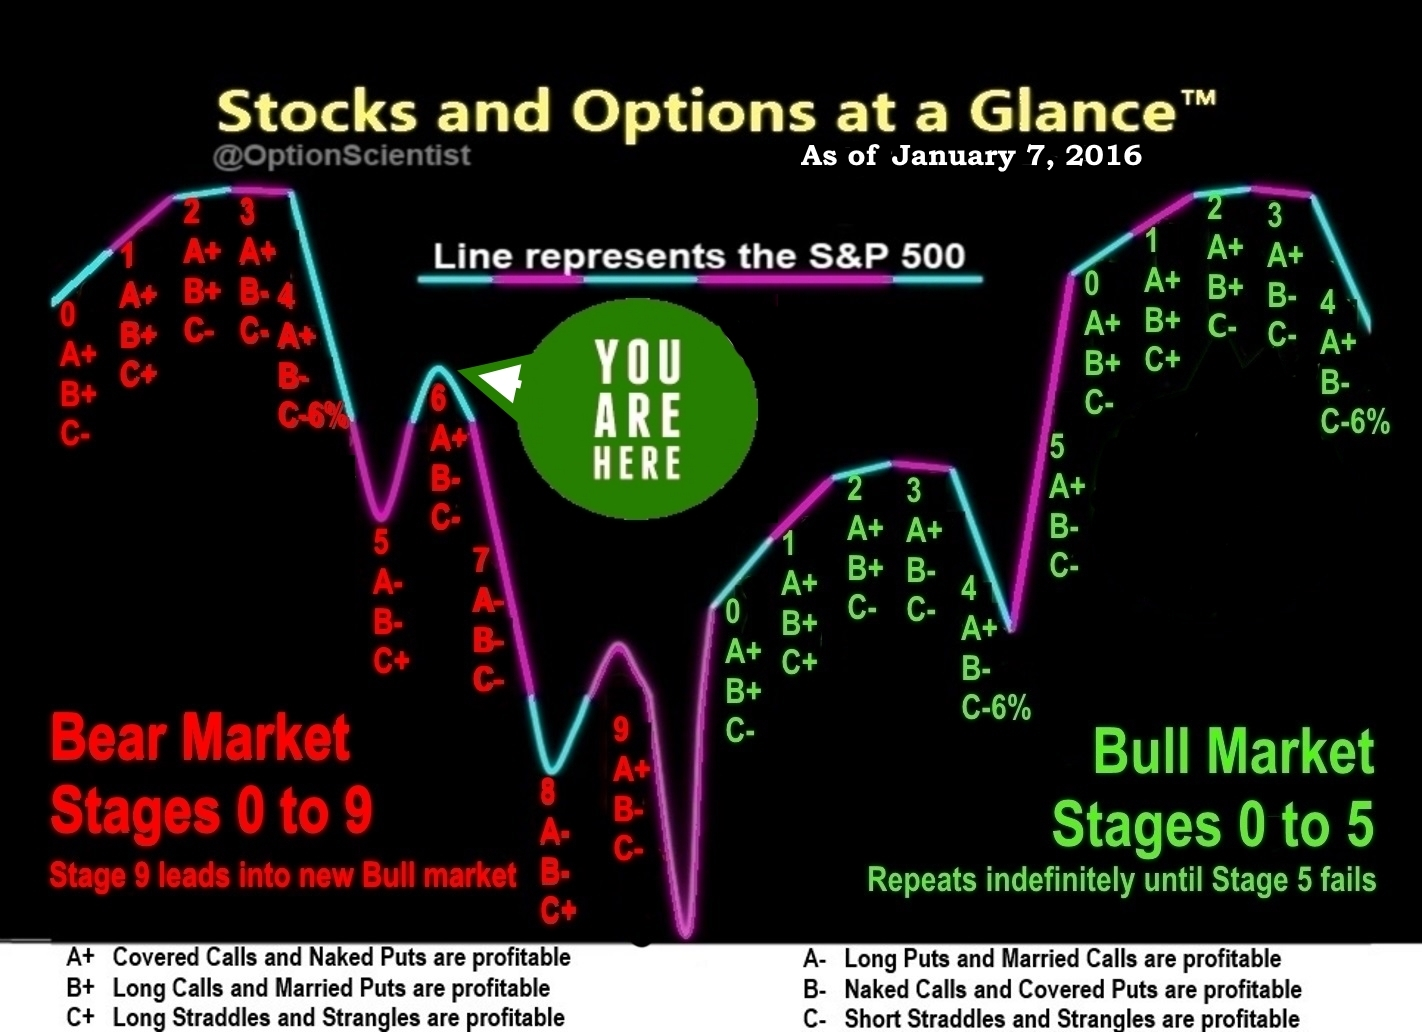 Stocks and Options at a Glance 01-07-16